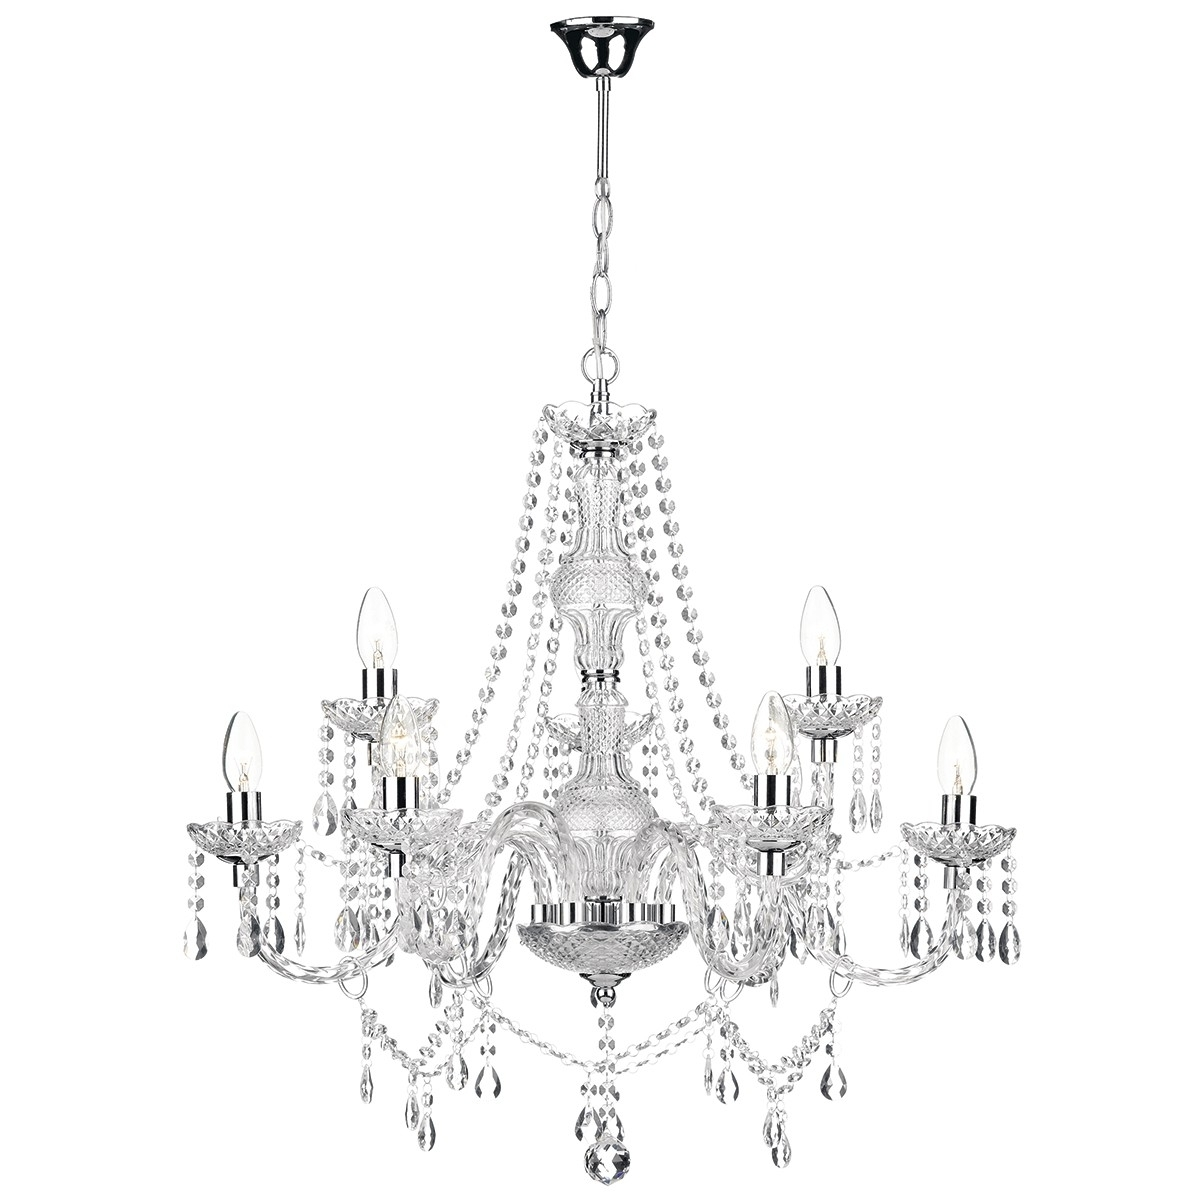 Chandeliers Design : Magnificent Lighting Transparent Acrylic Table Within Current Chrome And Glass Chandeliers (View 12 of 20)